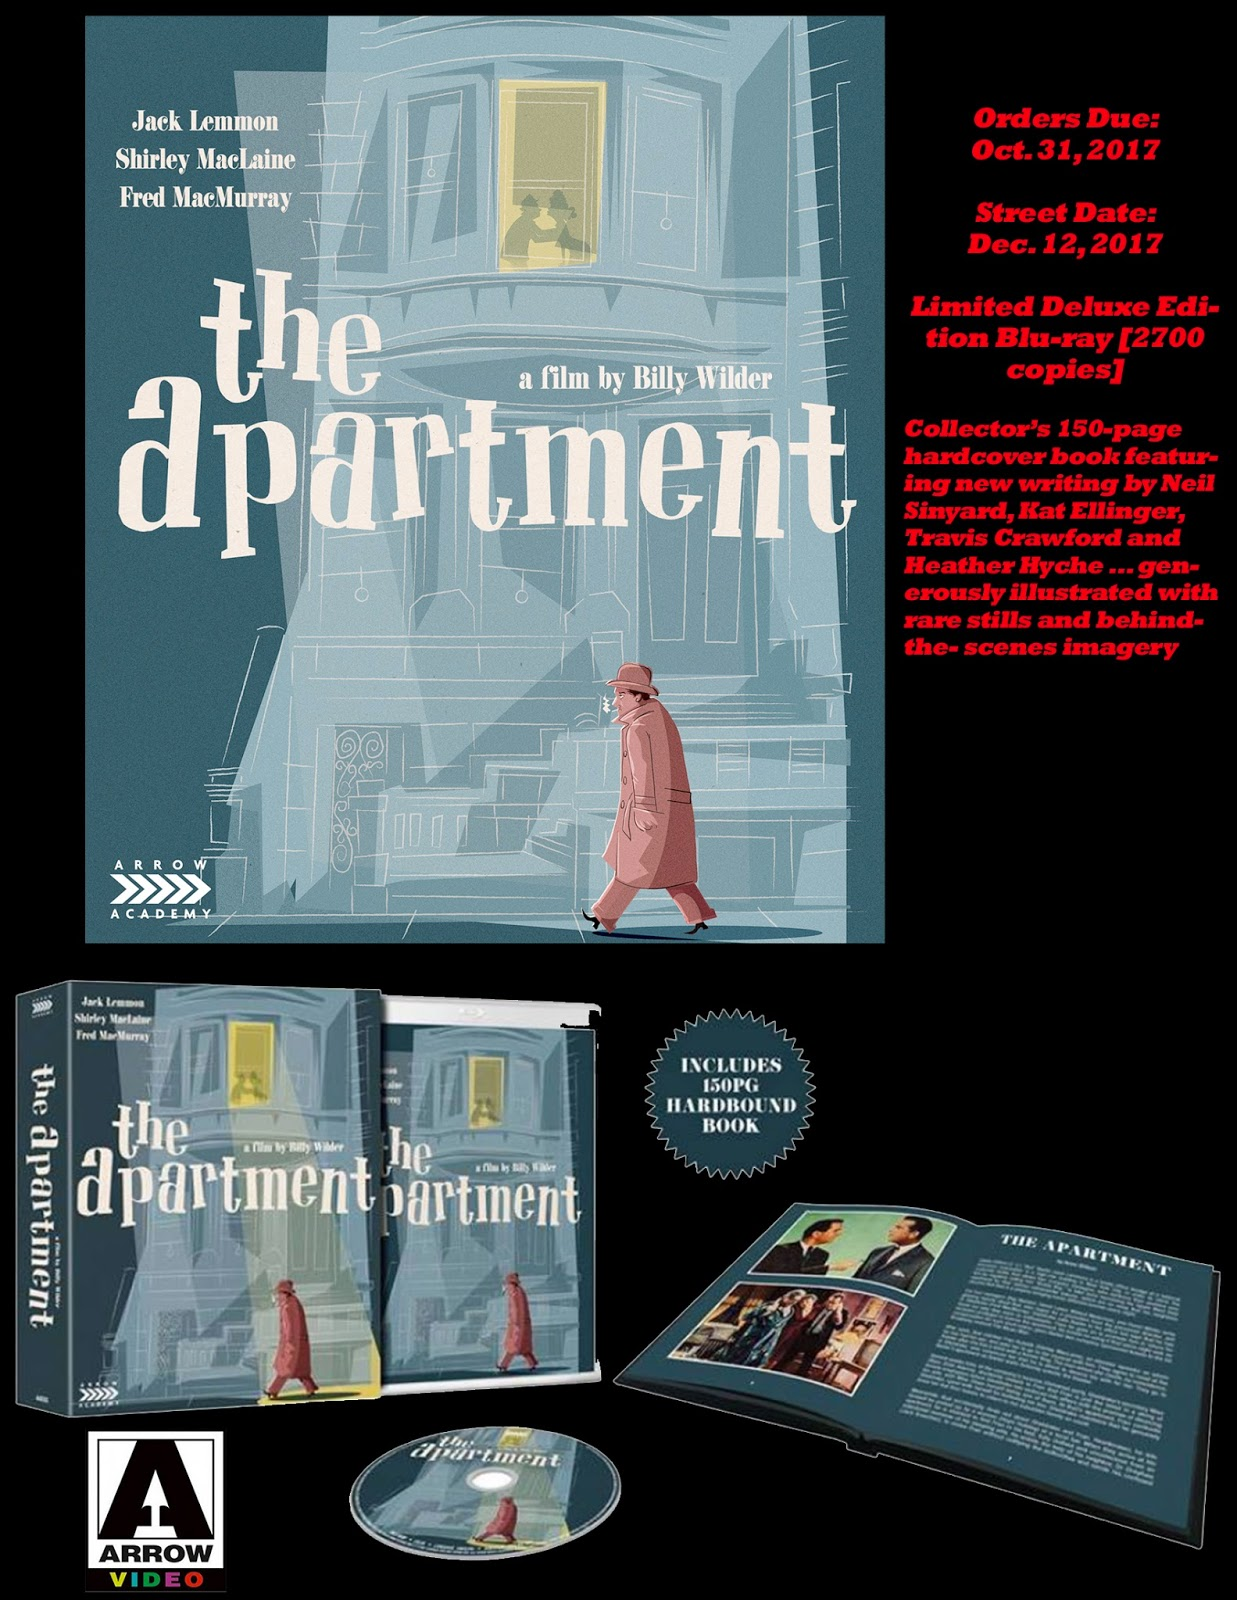 Arrow Video S 4k Restoration Of The Apartment Heads To Blu Ray On Dec 12